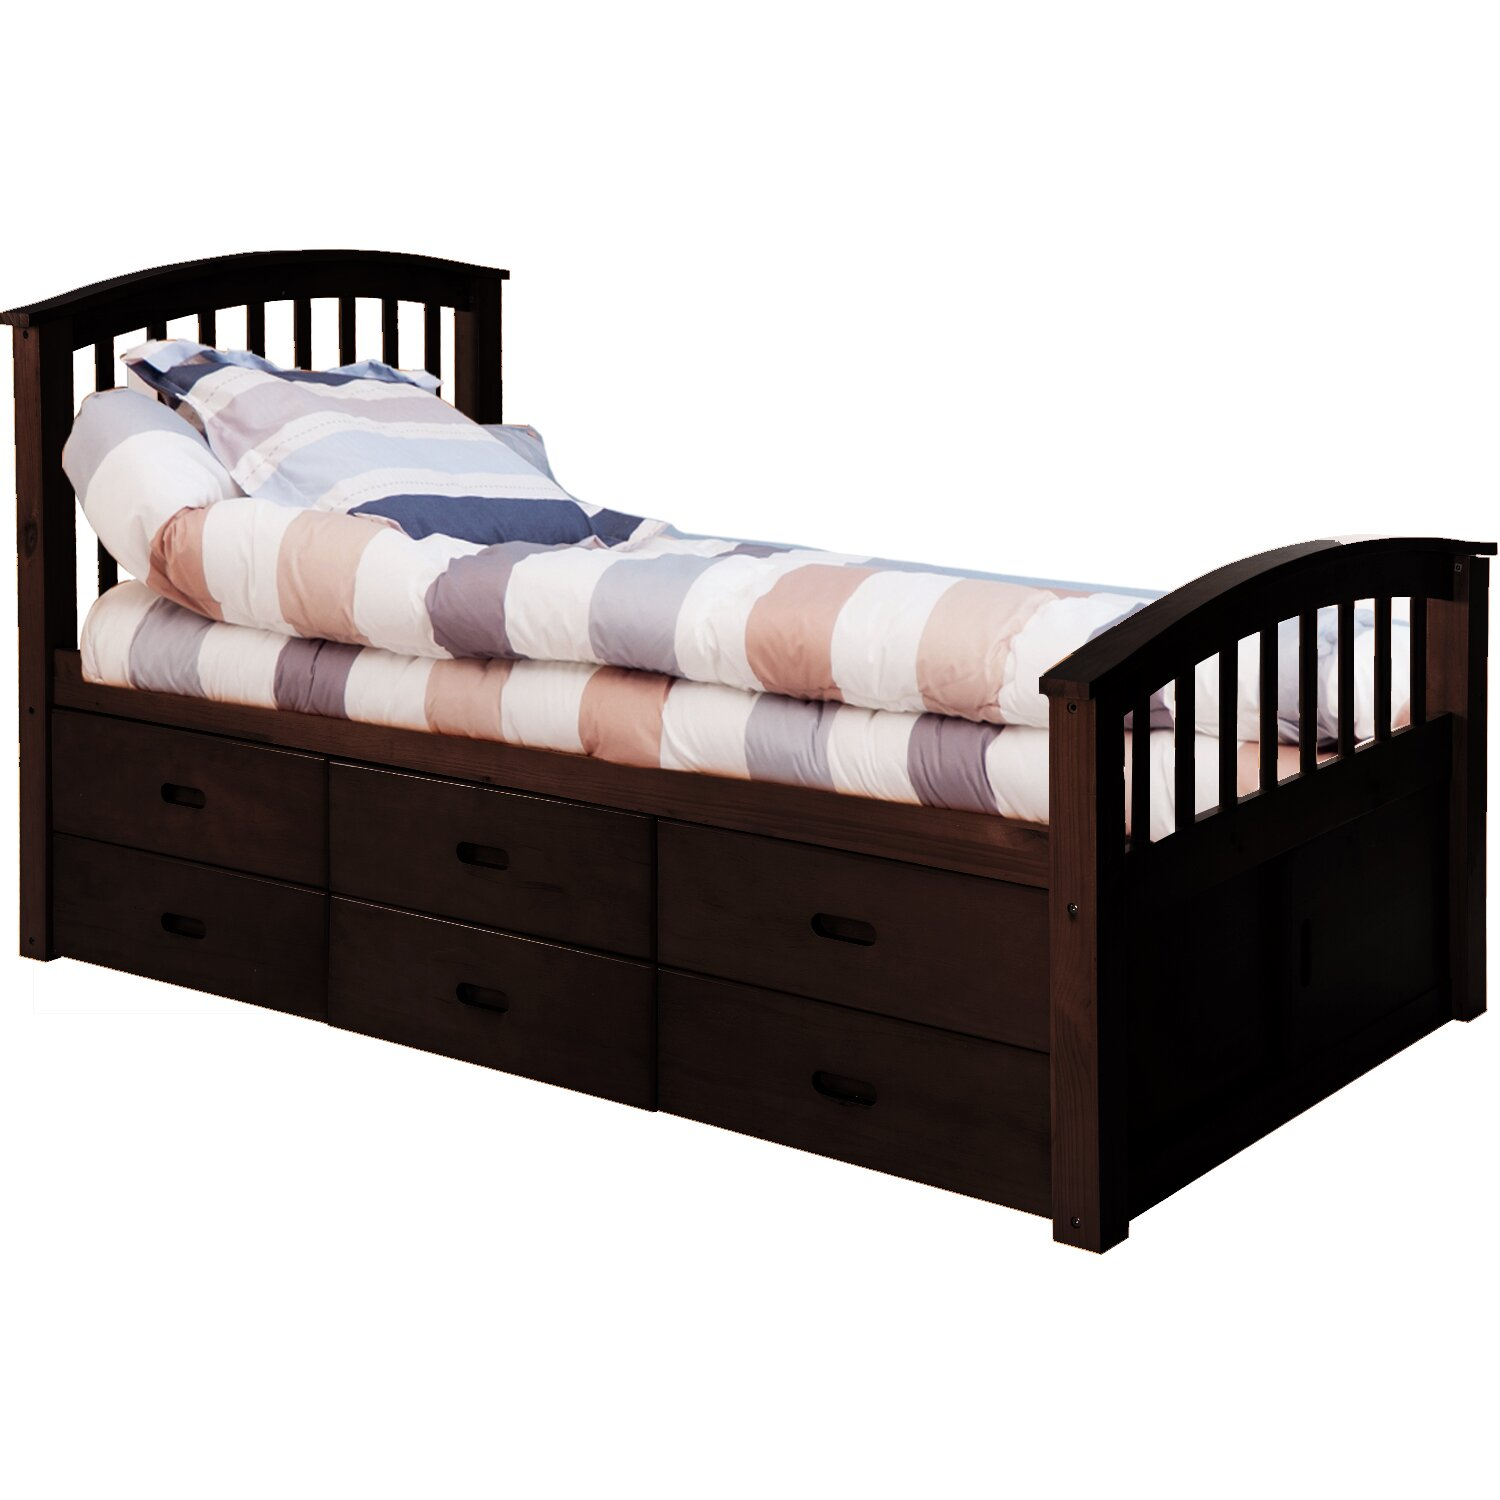 captains bed twin  drawers solid wood storage twin platform bed  - solid wood storage twin platform bed with  drawers